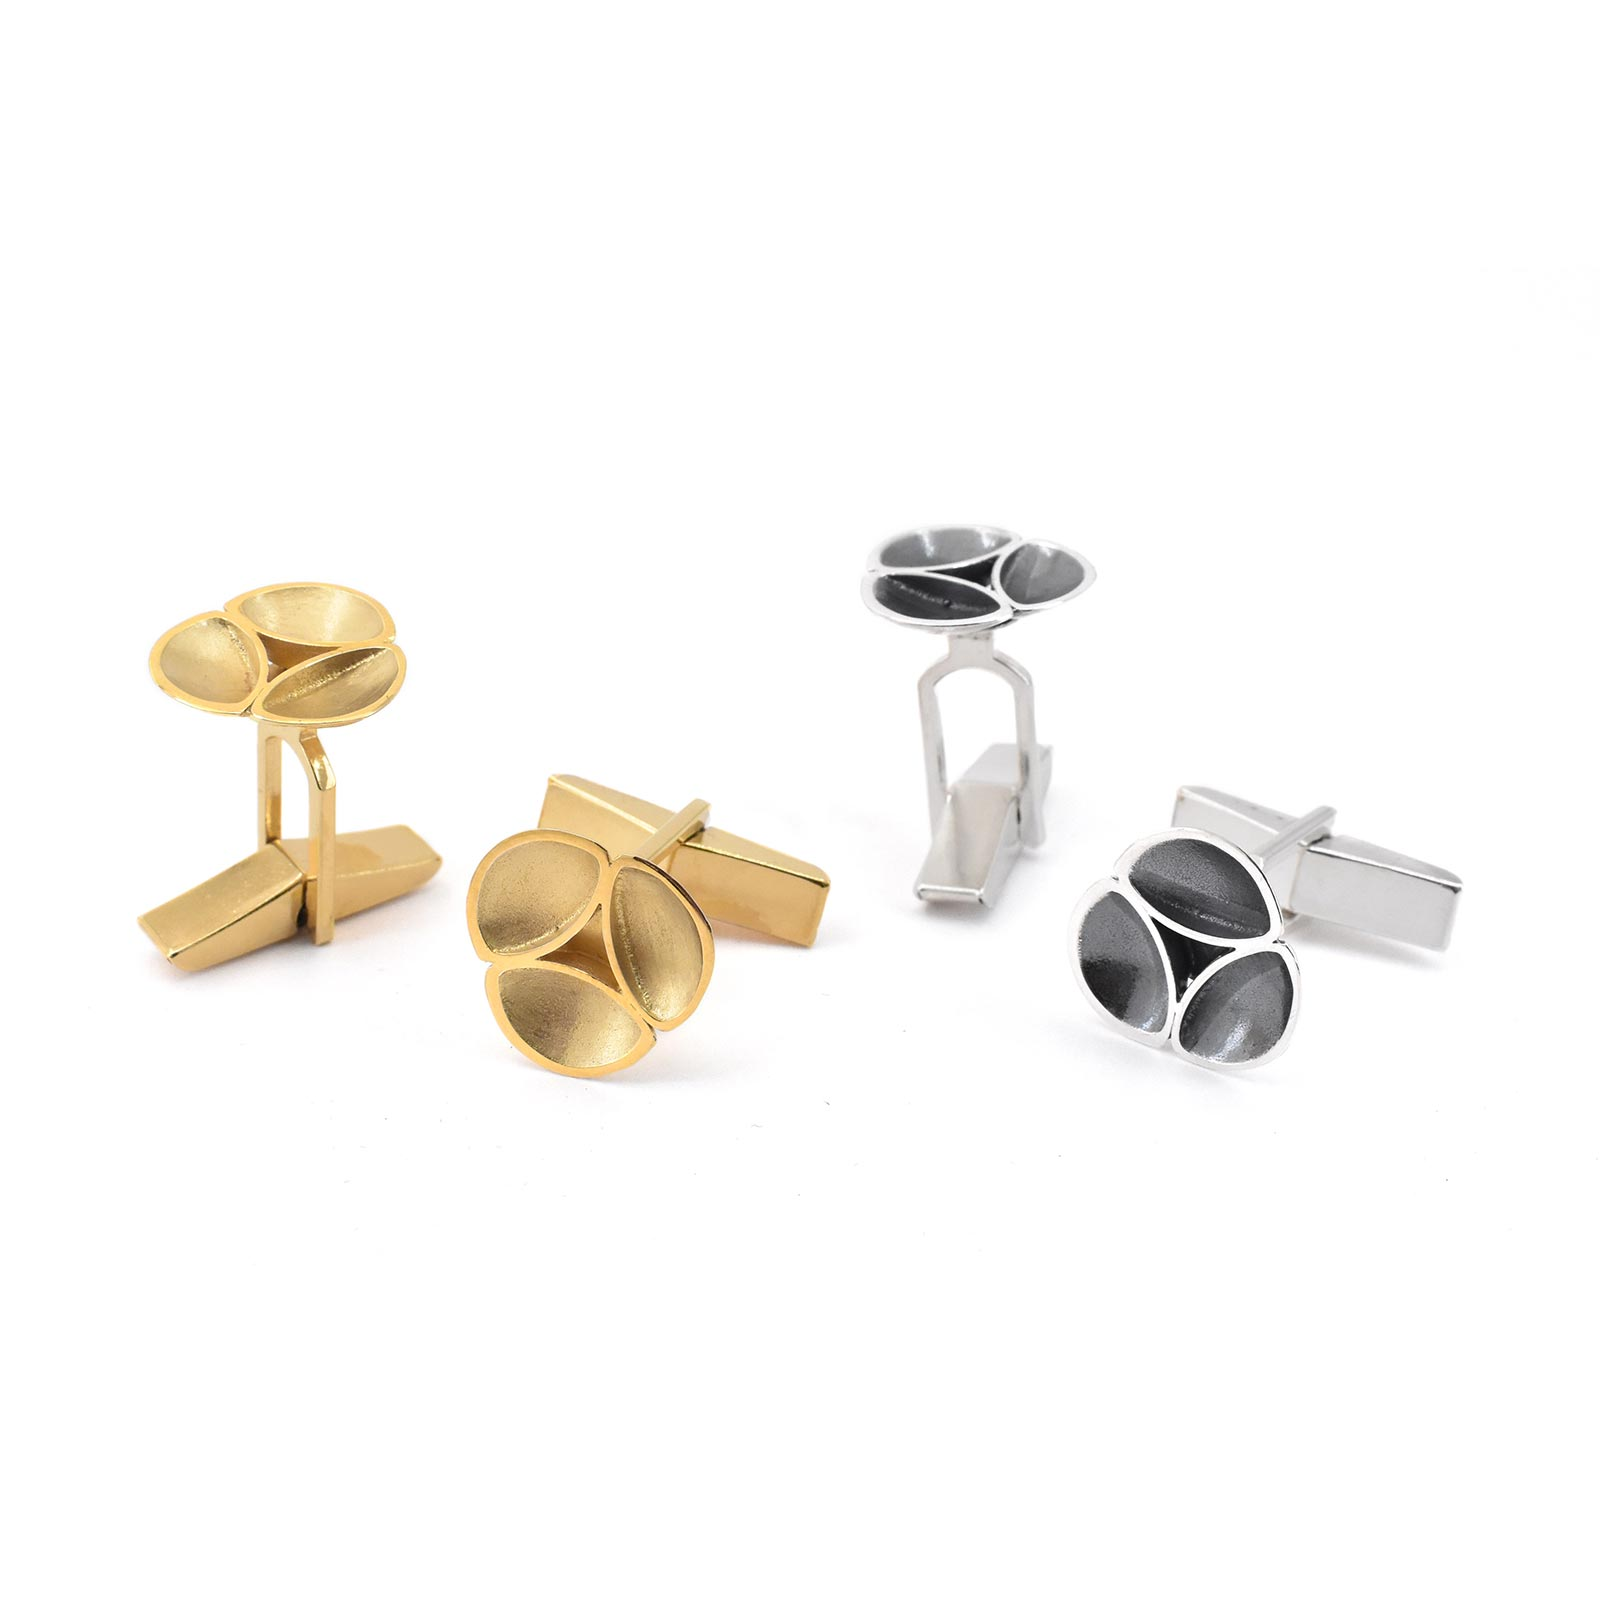 Oyster Gold and Silver Cufflinks Group C09 C10